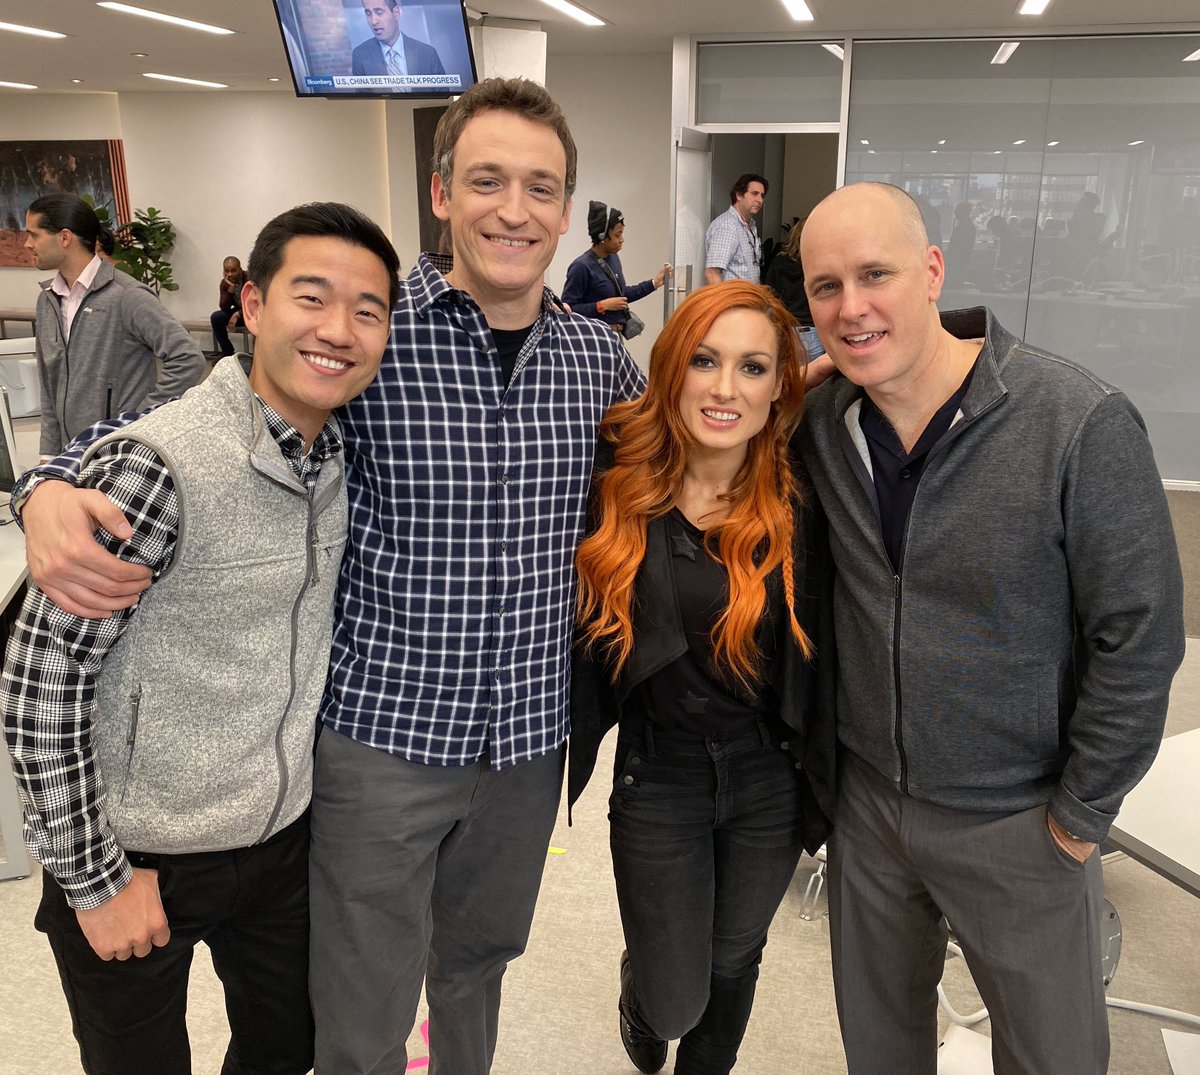 Ladies and gentlemen… THE MAN!  Funny as hell, awesome one set, and great to work with. She nailed it. Great to meet you @BeckyLynchWWE Thanks for coming to play!  #Billions @SHO_Billions https://t.co/EGN0rJYuIw